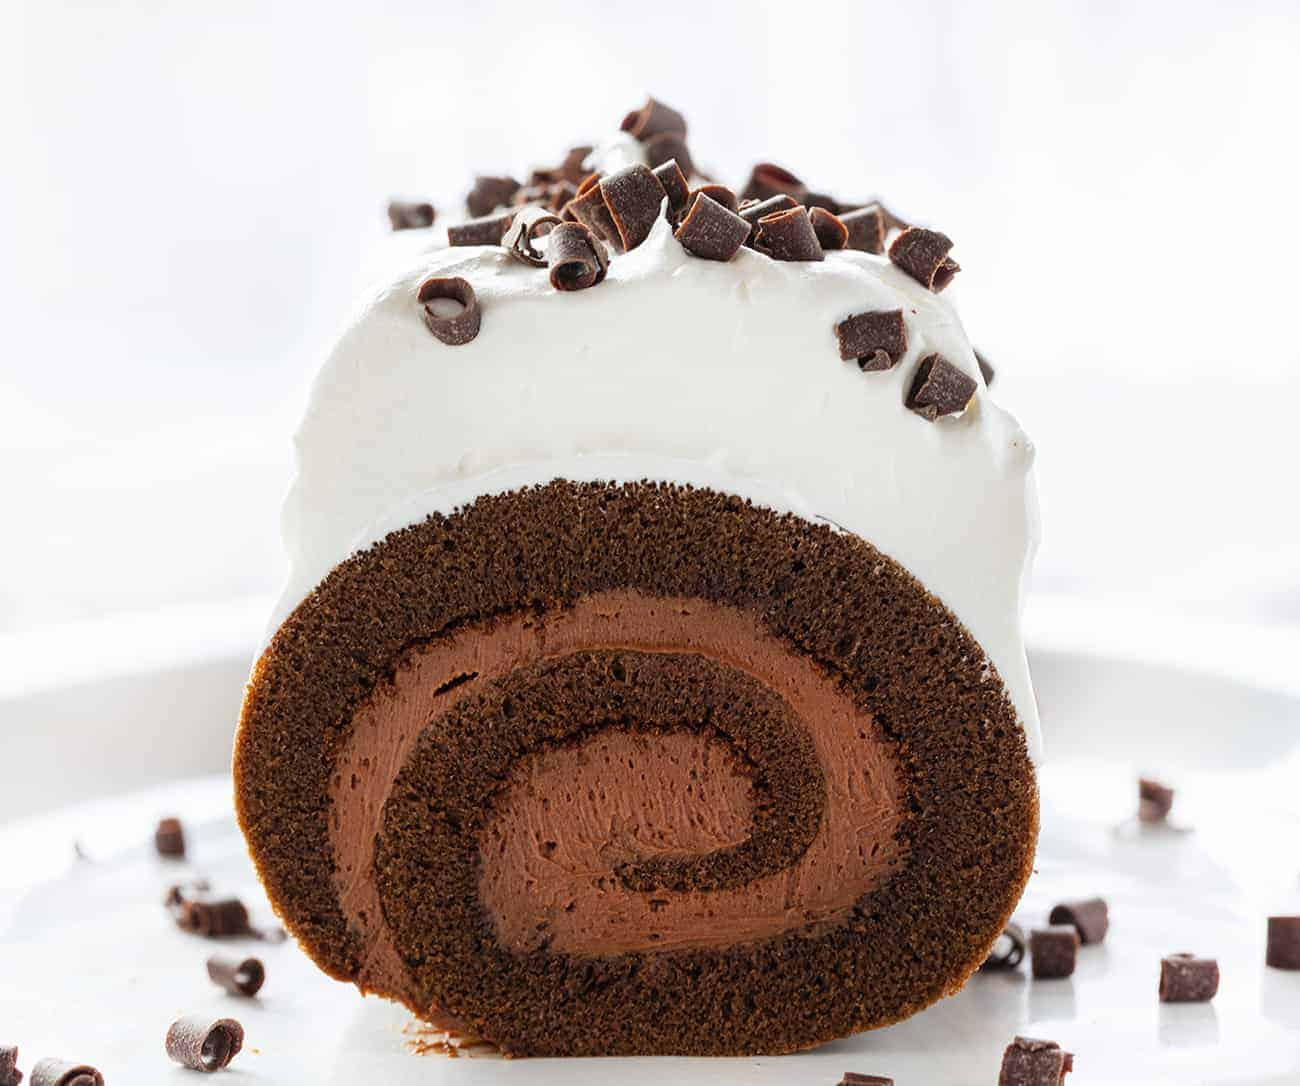 Sliced into French Silk Cake Roll